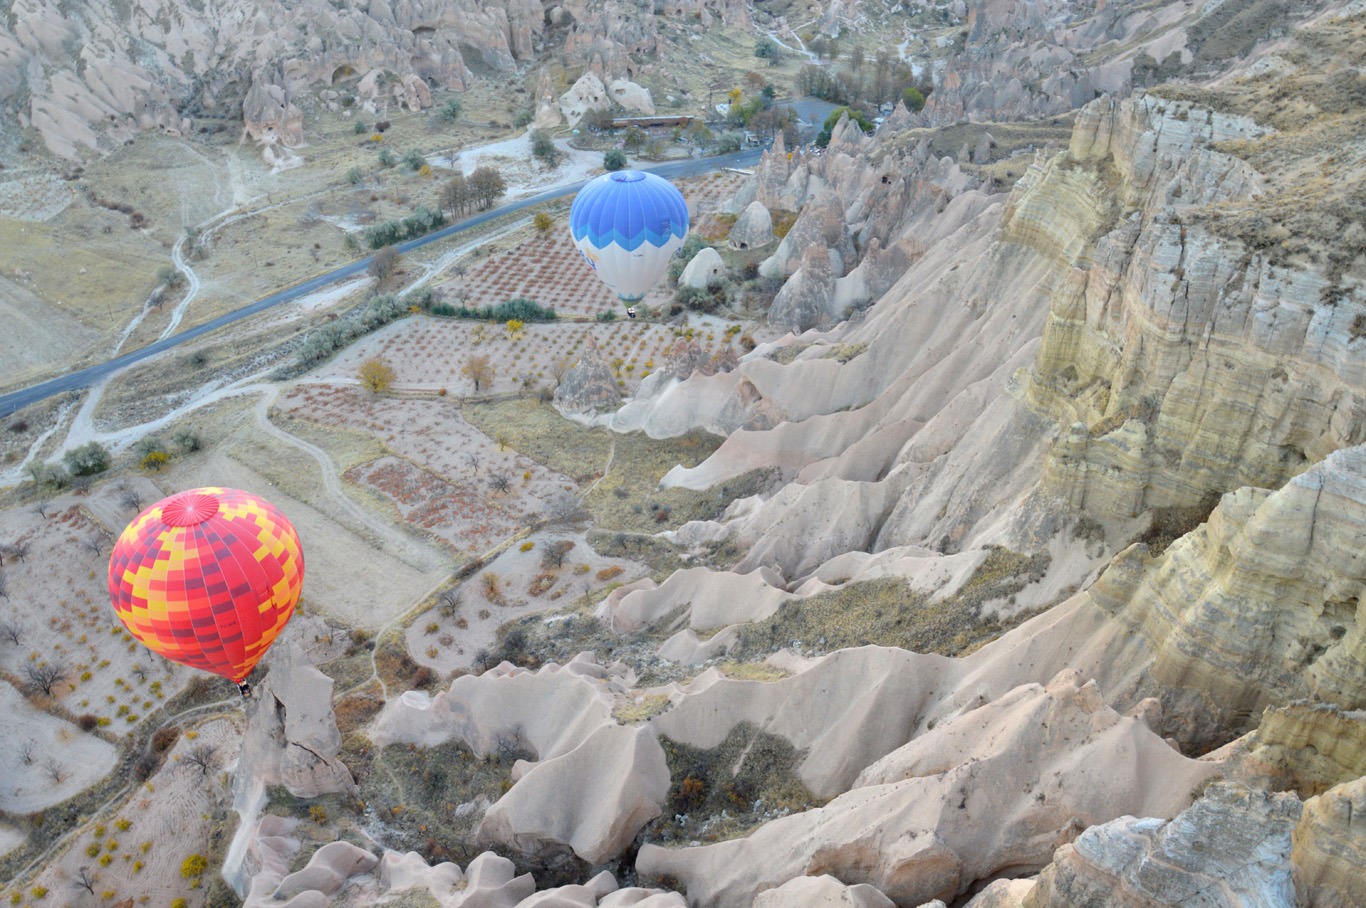 Balloons seen from up above